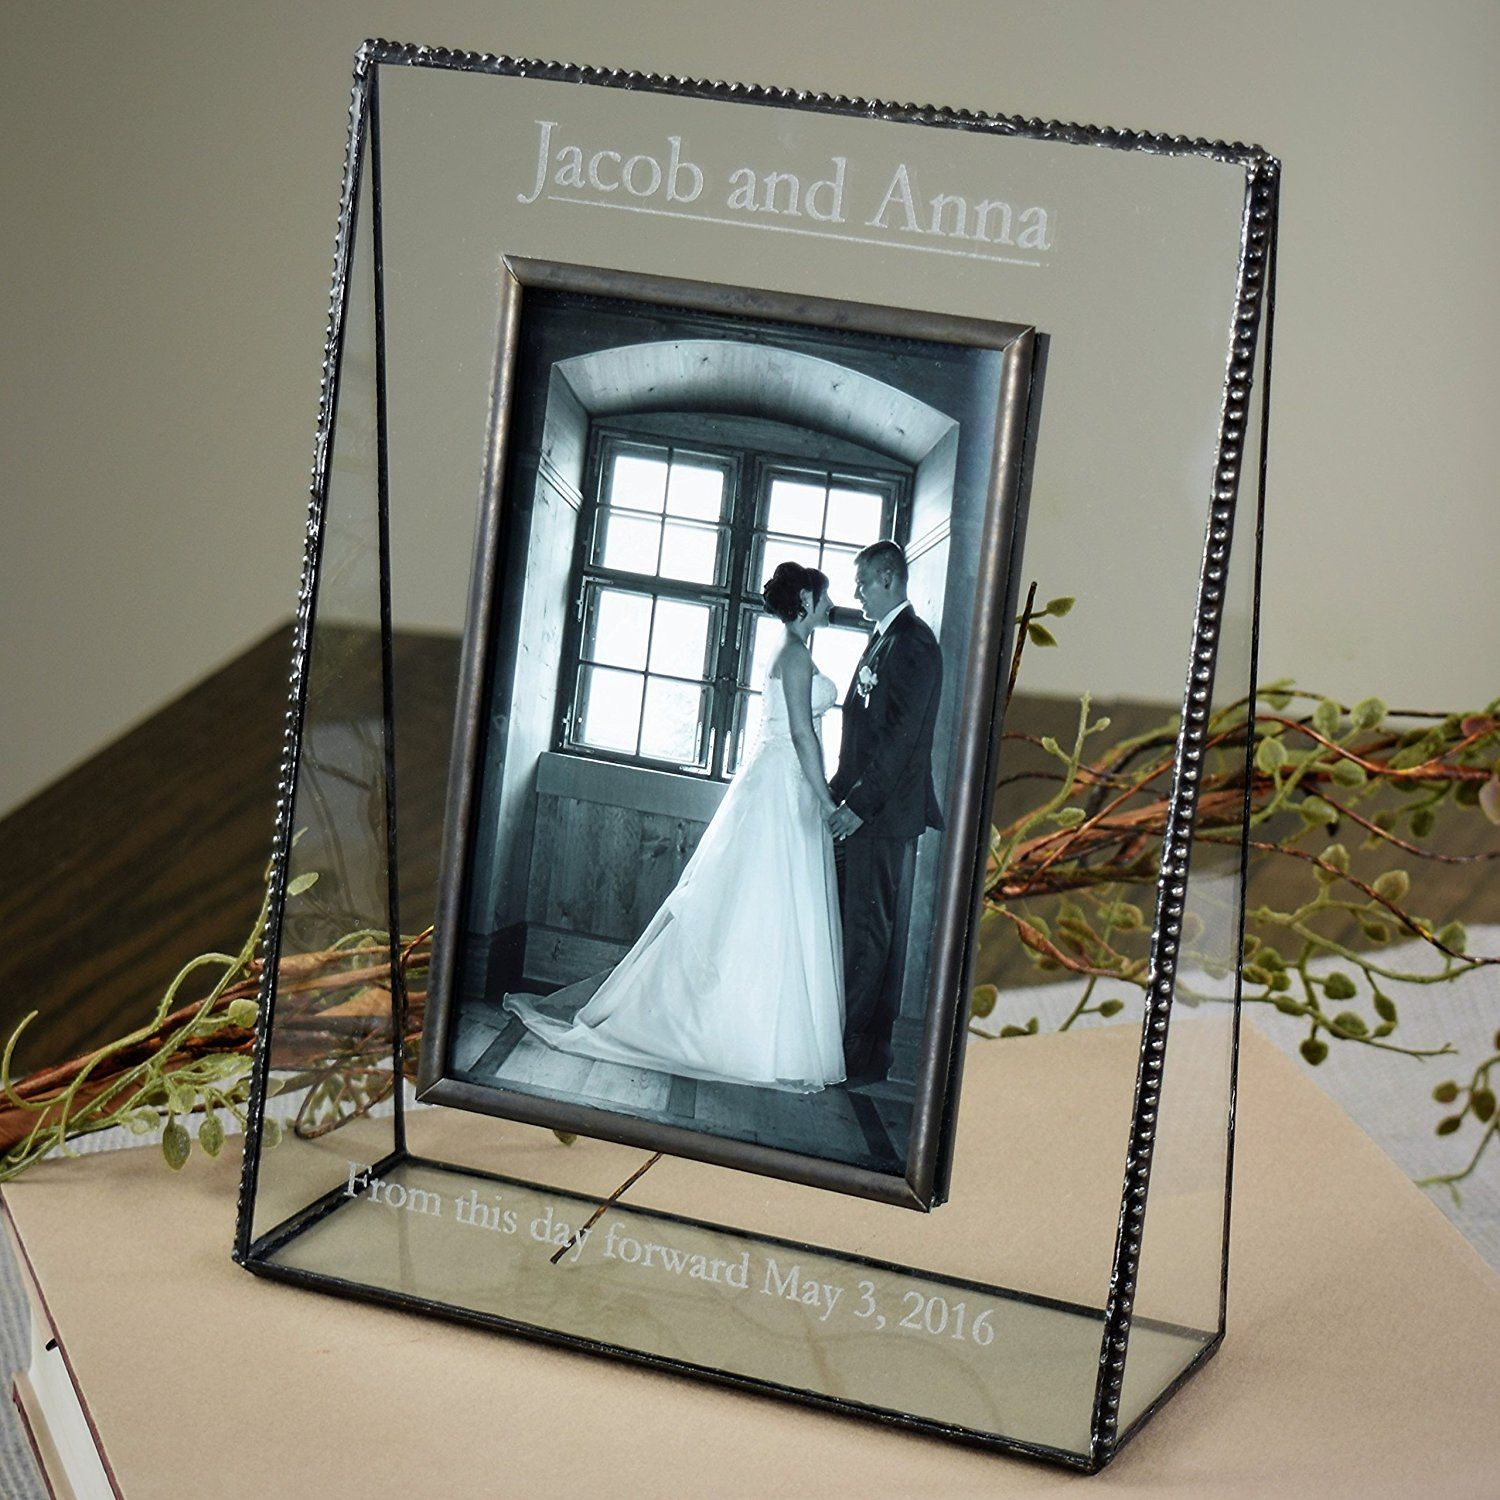 J devlin pic 319 57v ep548 clear glass 5x7 picture frame vertical j devlin pic 319 57v ep548 clear glass 5x7 picture frame vertical portrait personalized wedding jeuxipadfo Image collections